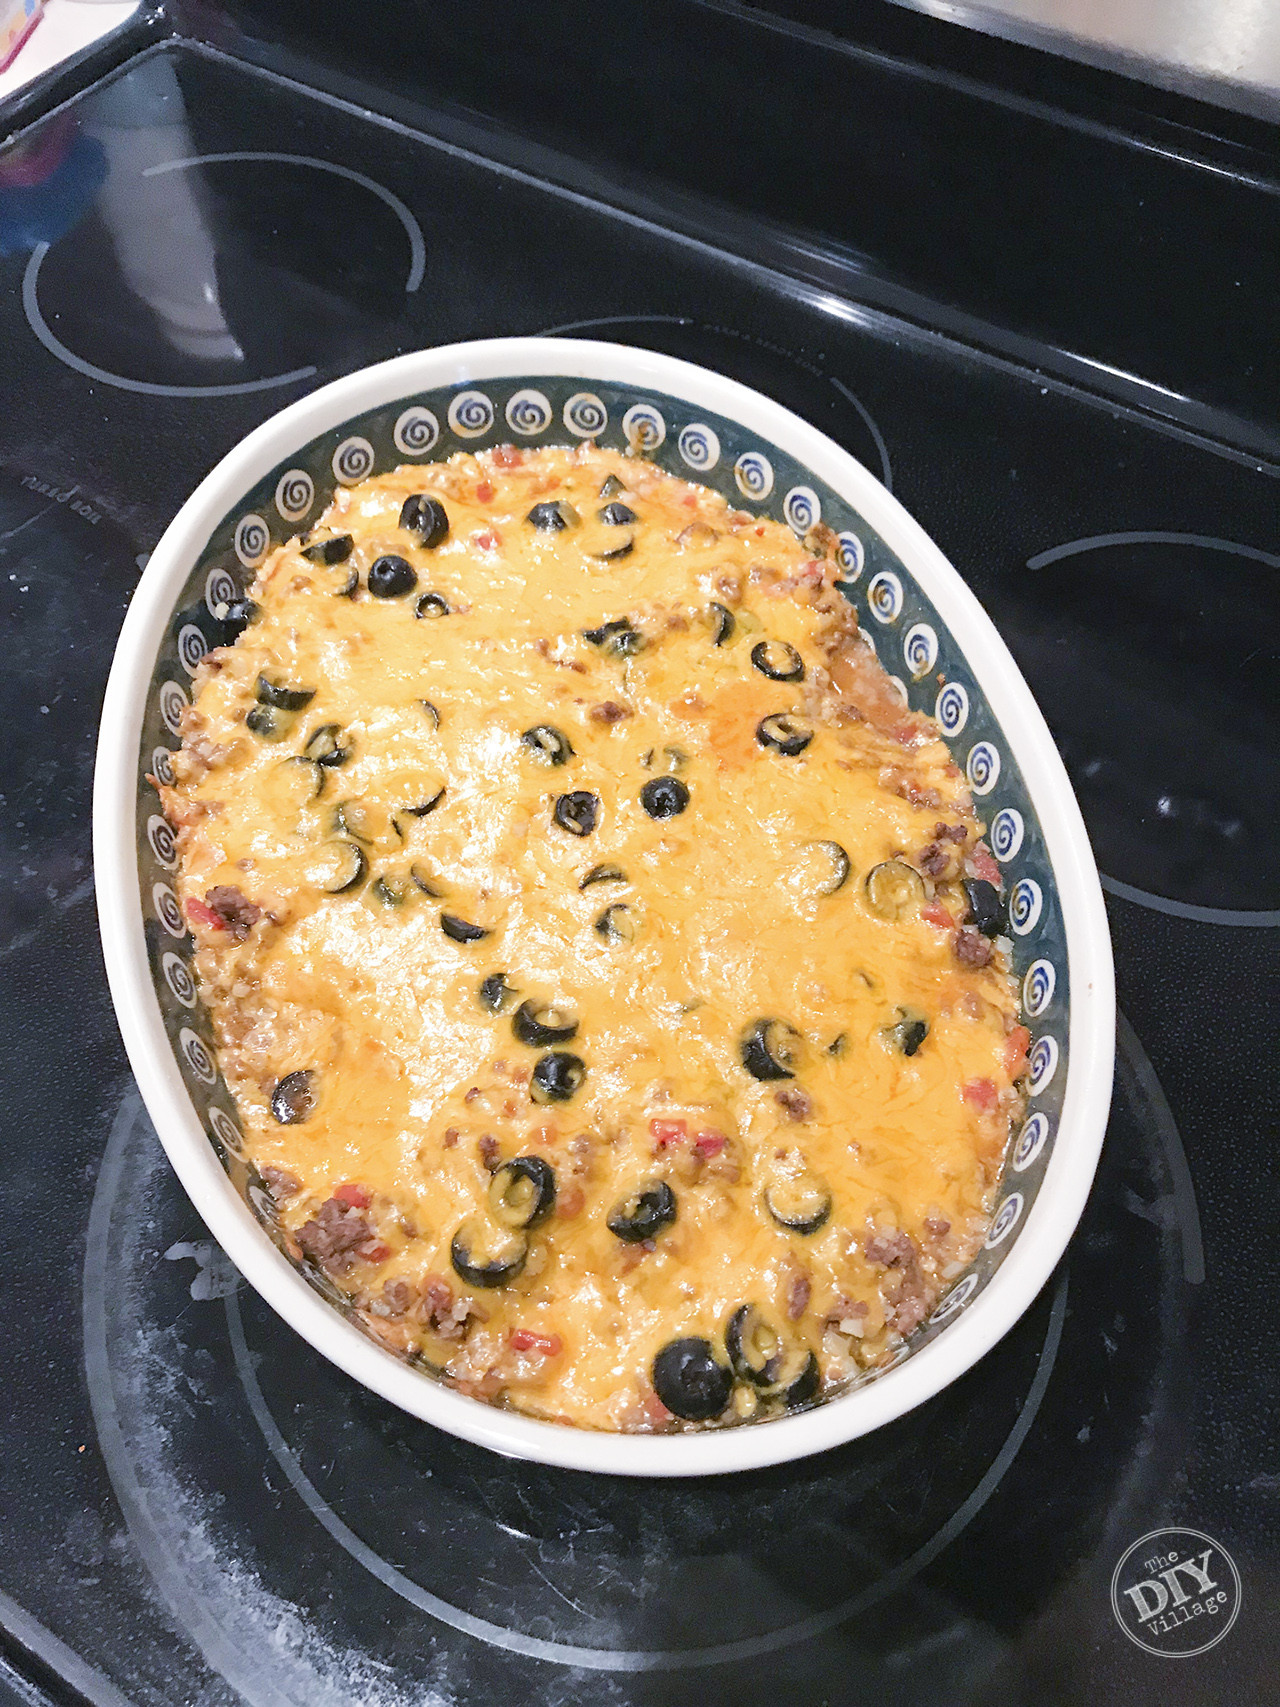 Low Carb Mexican Chicken Casserole  Low Carb Mexican Casserole Keto Friendly The DIY Village